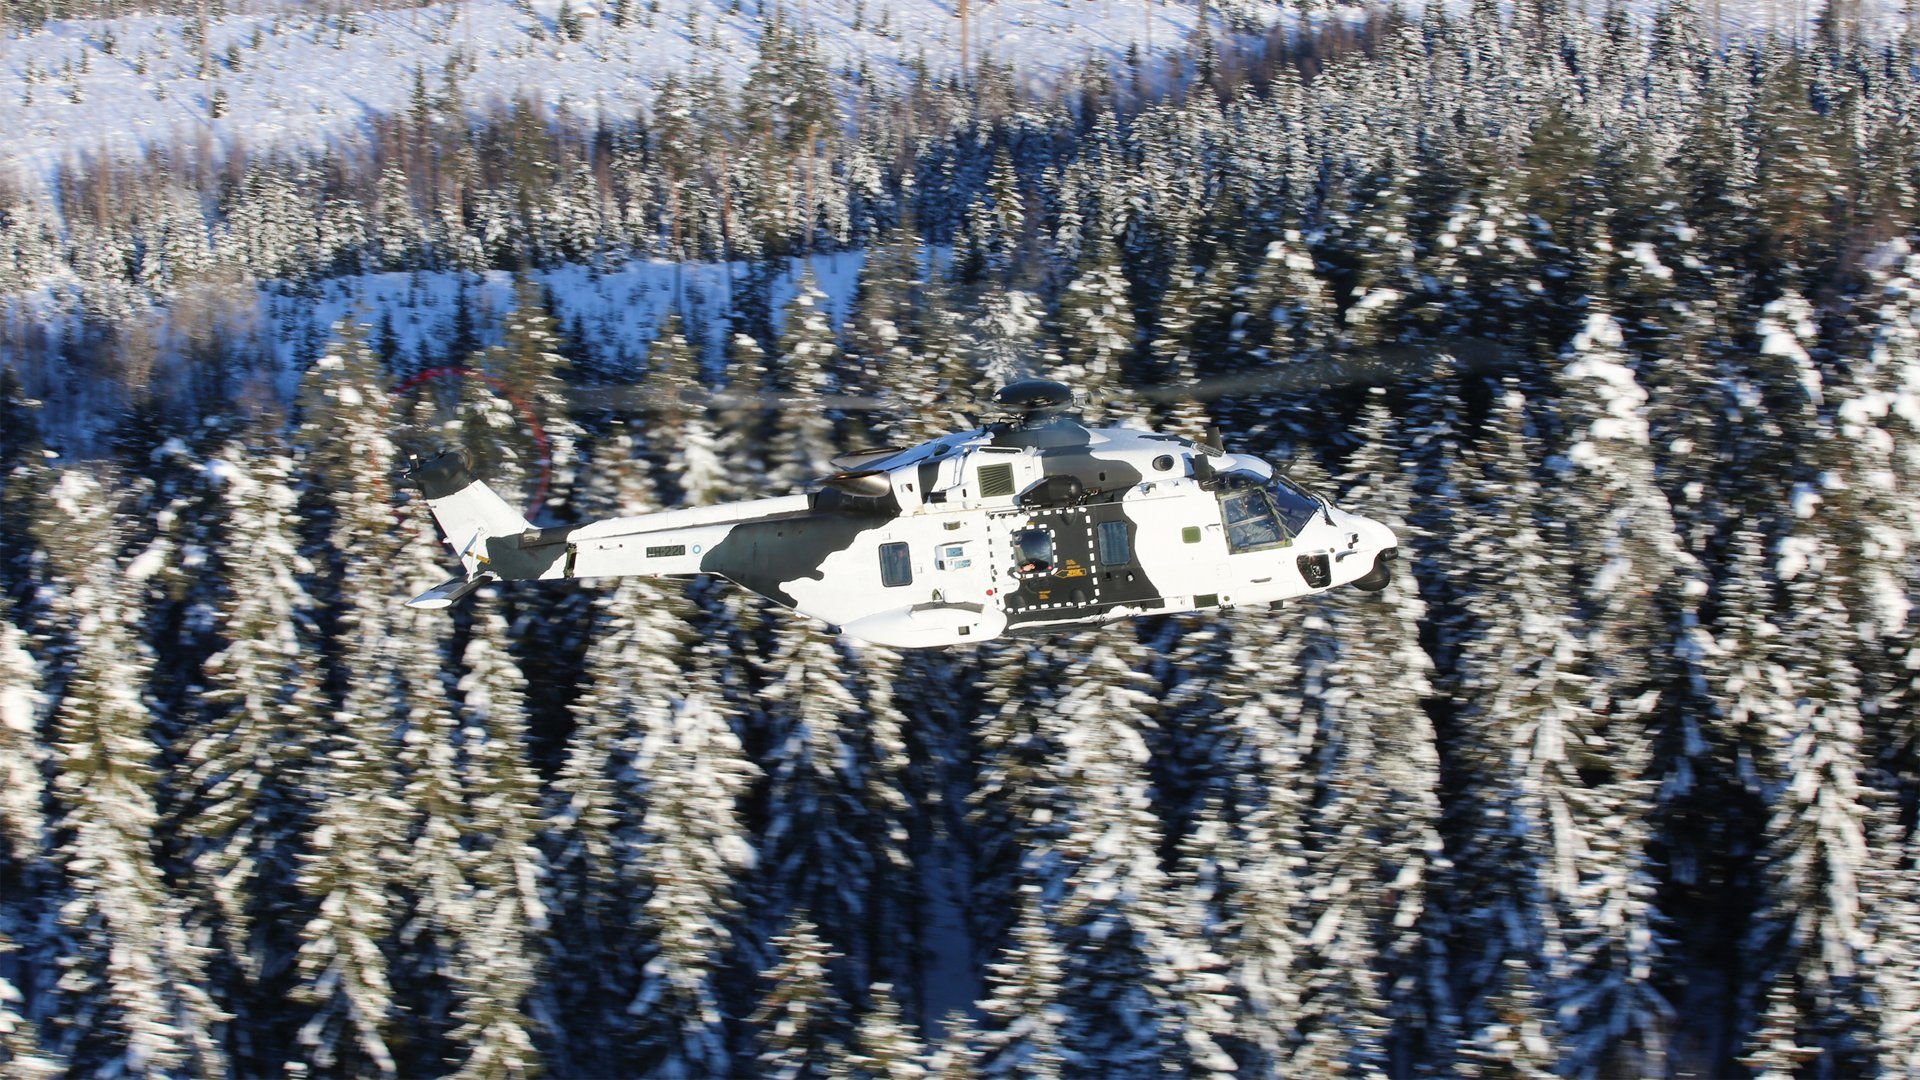 A Finnish Army NH90 is shown in flight with a camouflage paint scheme.